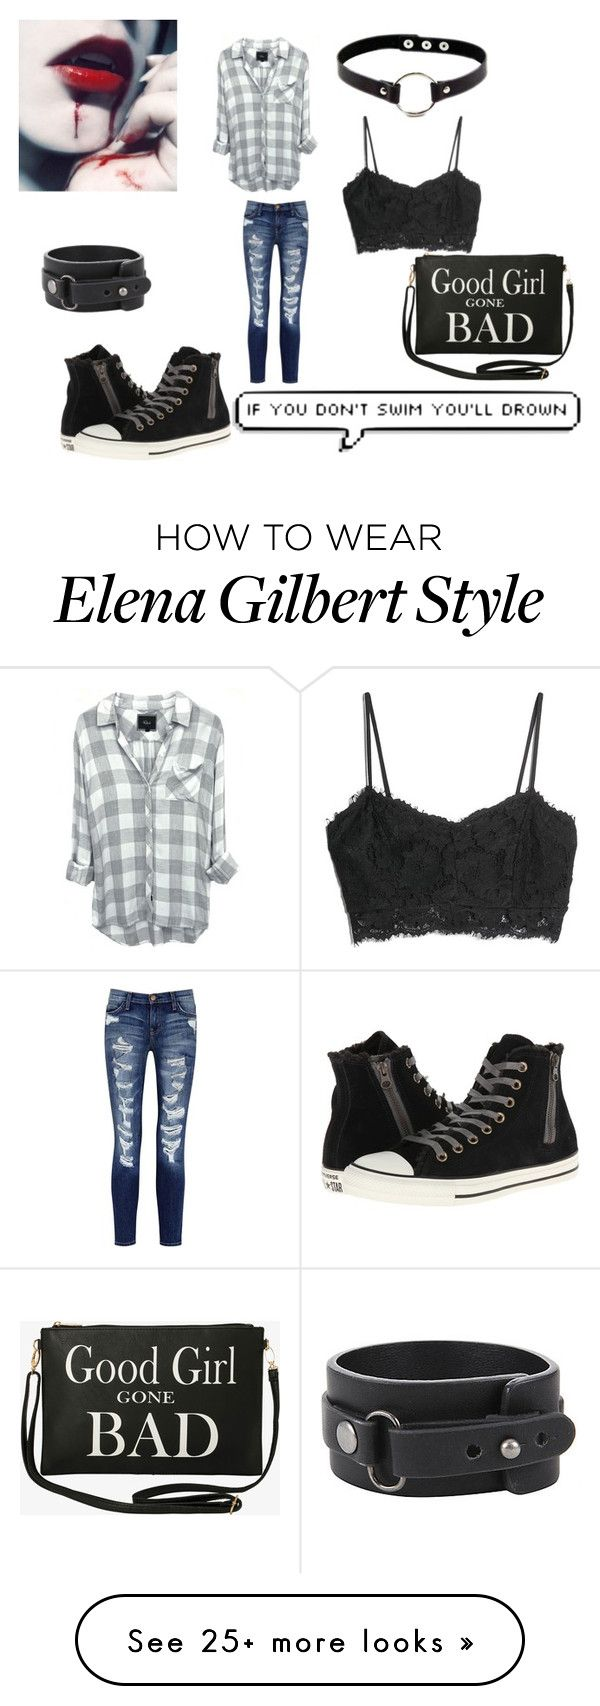 """Untitled #170"" by alyssacomer on Polyvore featuring MANGO, Converse, Current/Elliott and Torrid"